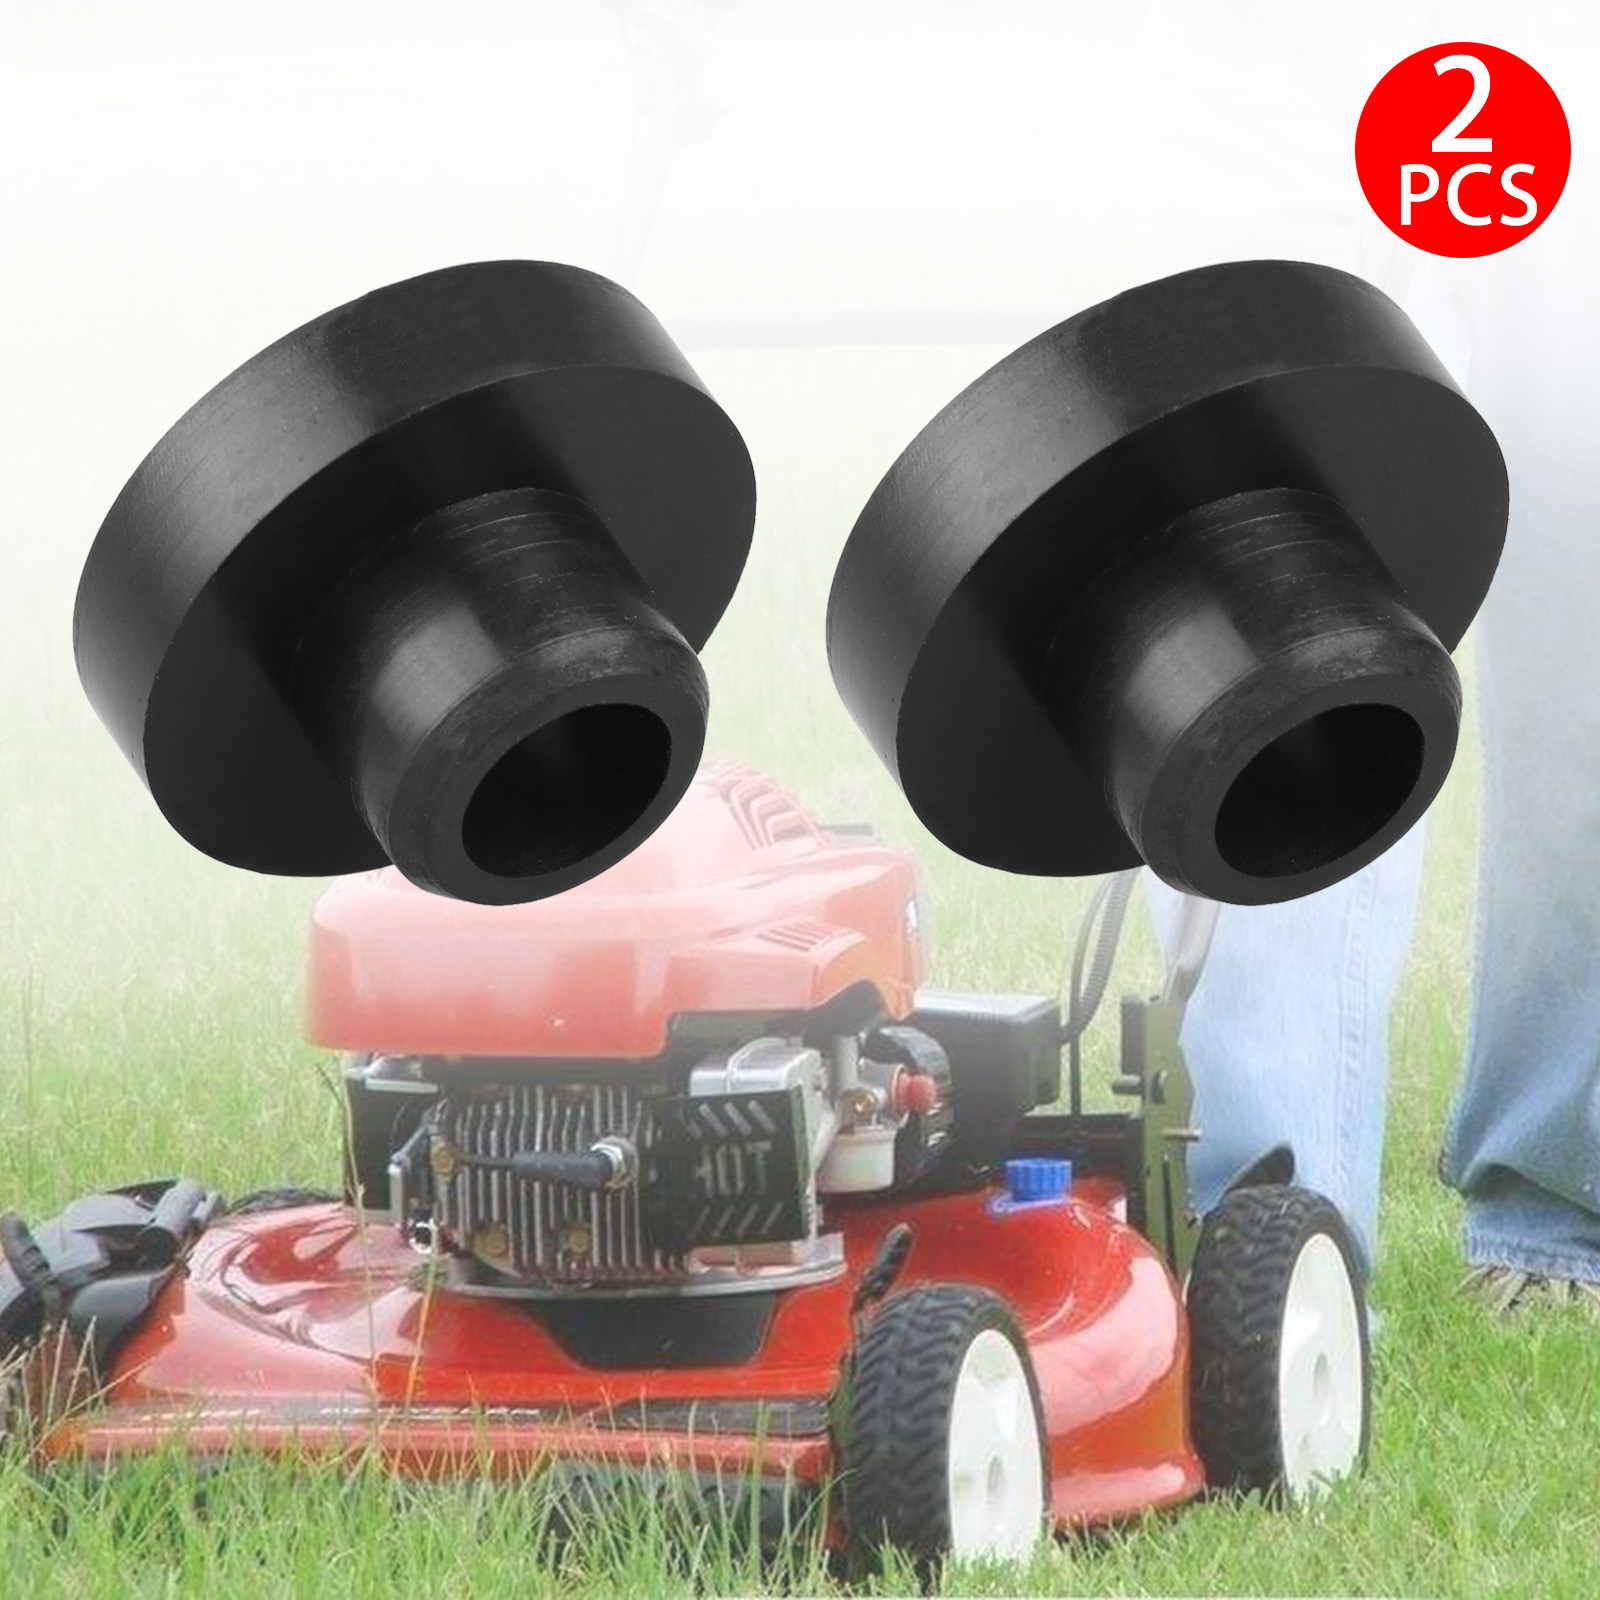 2pcs Universal Gas Fuel Tank Grommet Bushings For Tractor